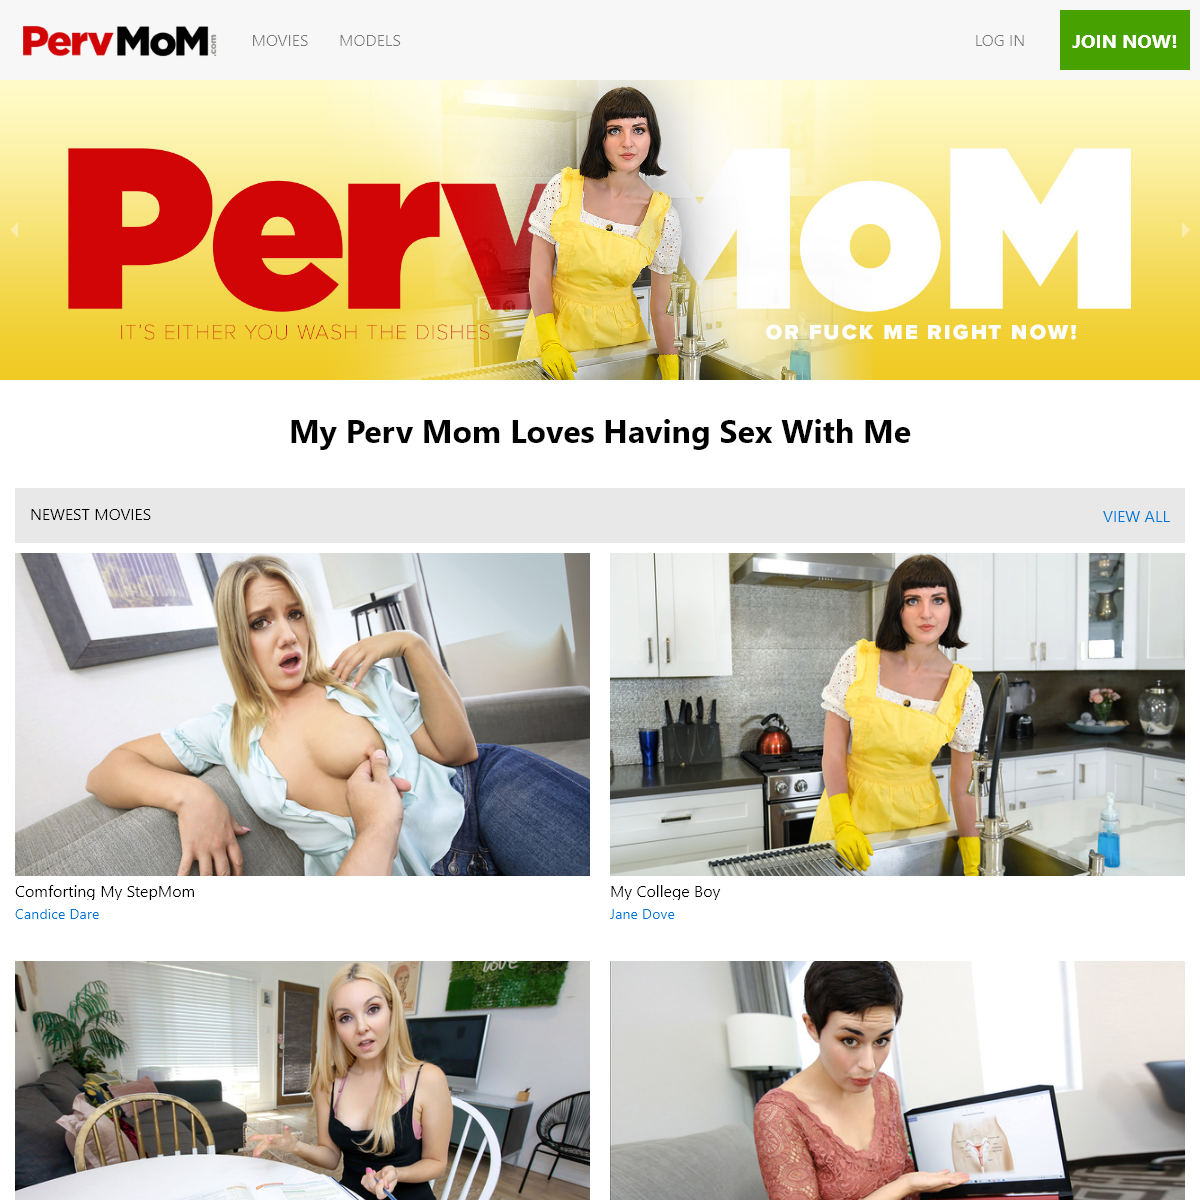 A complete backup of www.www.pervmom.com